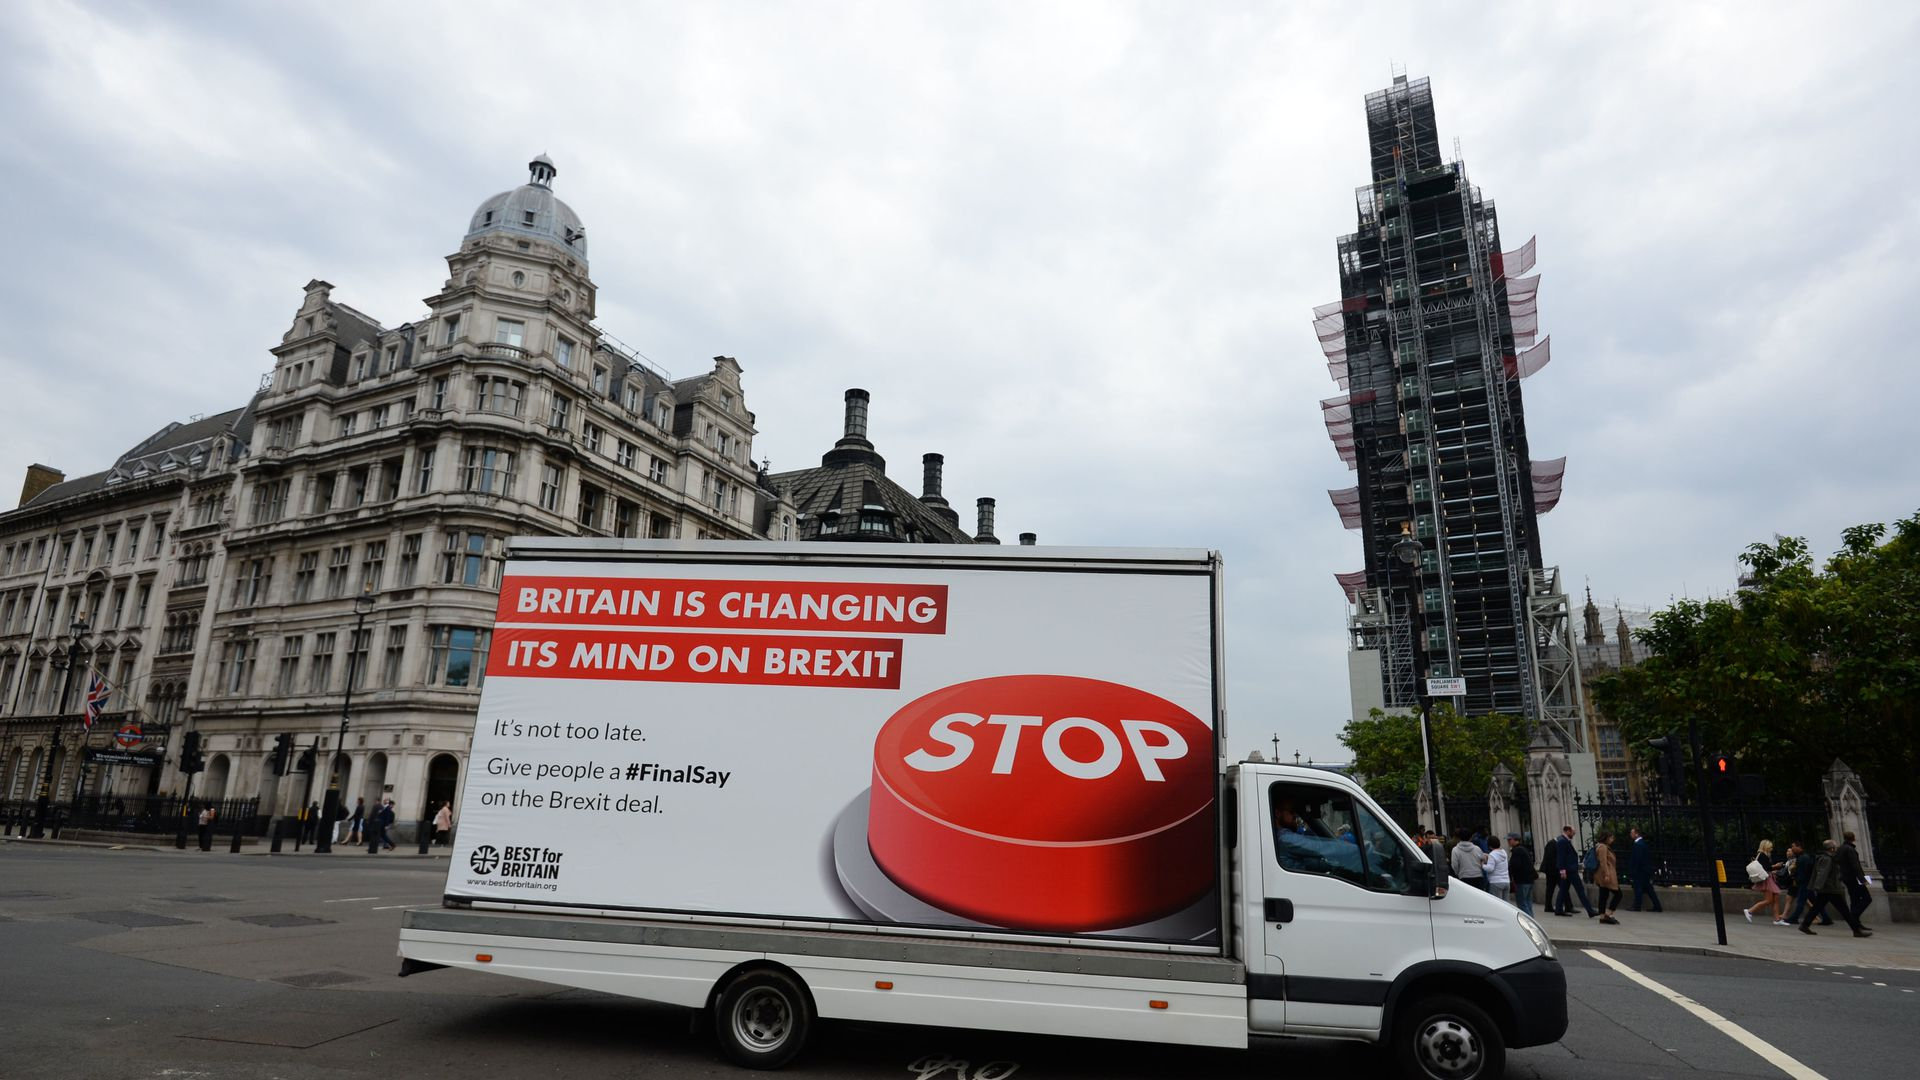 Billboard on the side of a truck rallying against Brexit